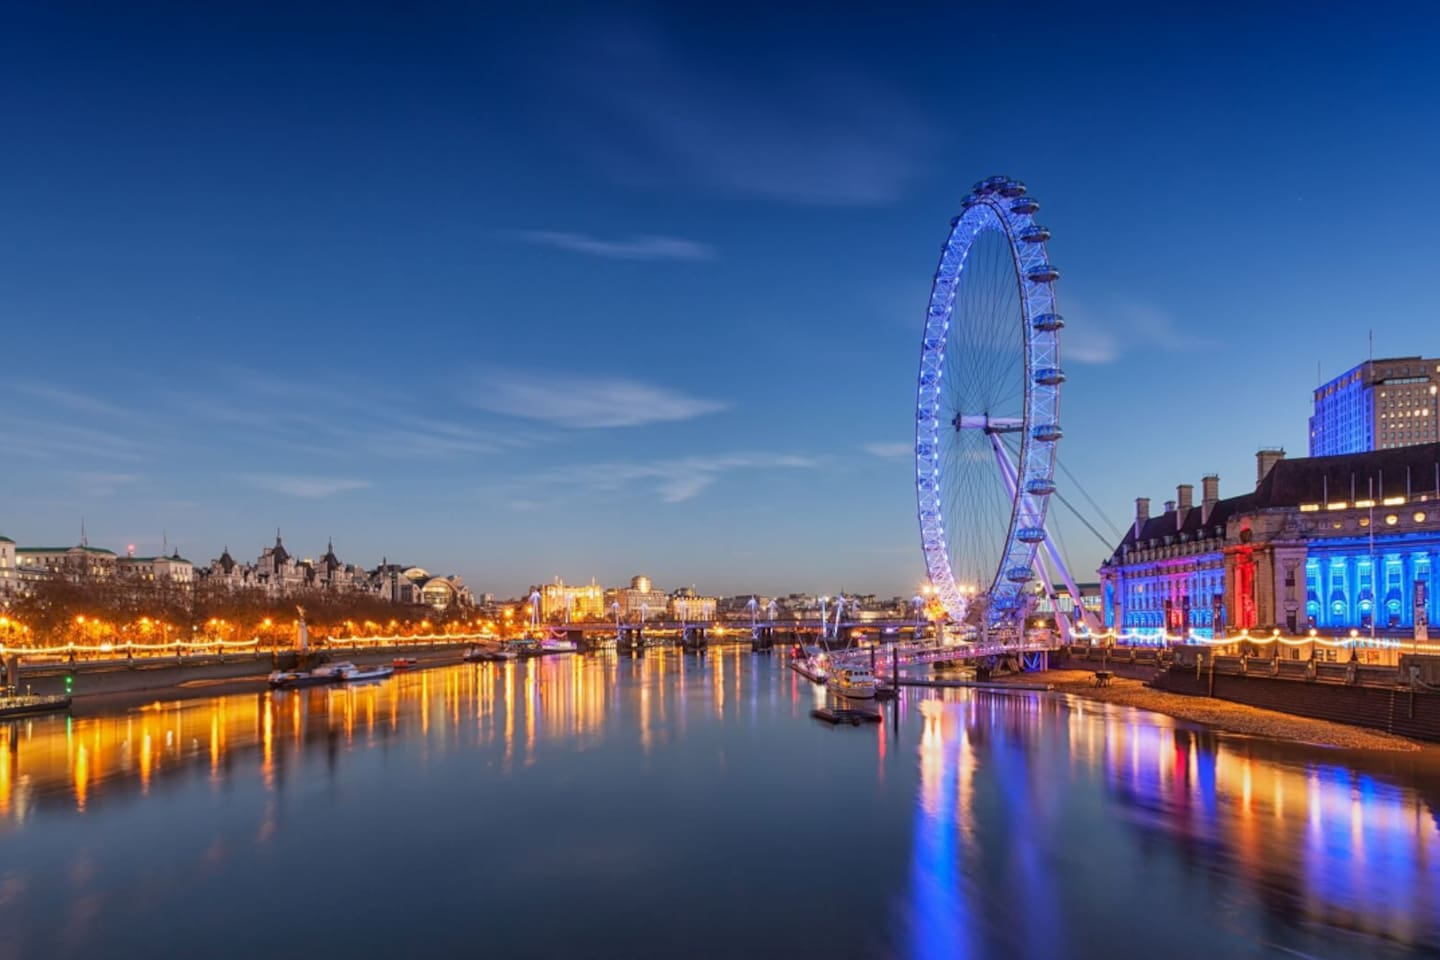 A short walk down the river and you will be at the London Eye. Take a ride and view London from above